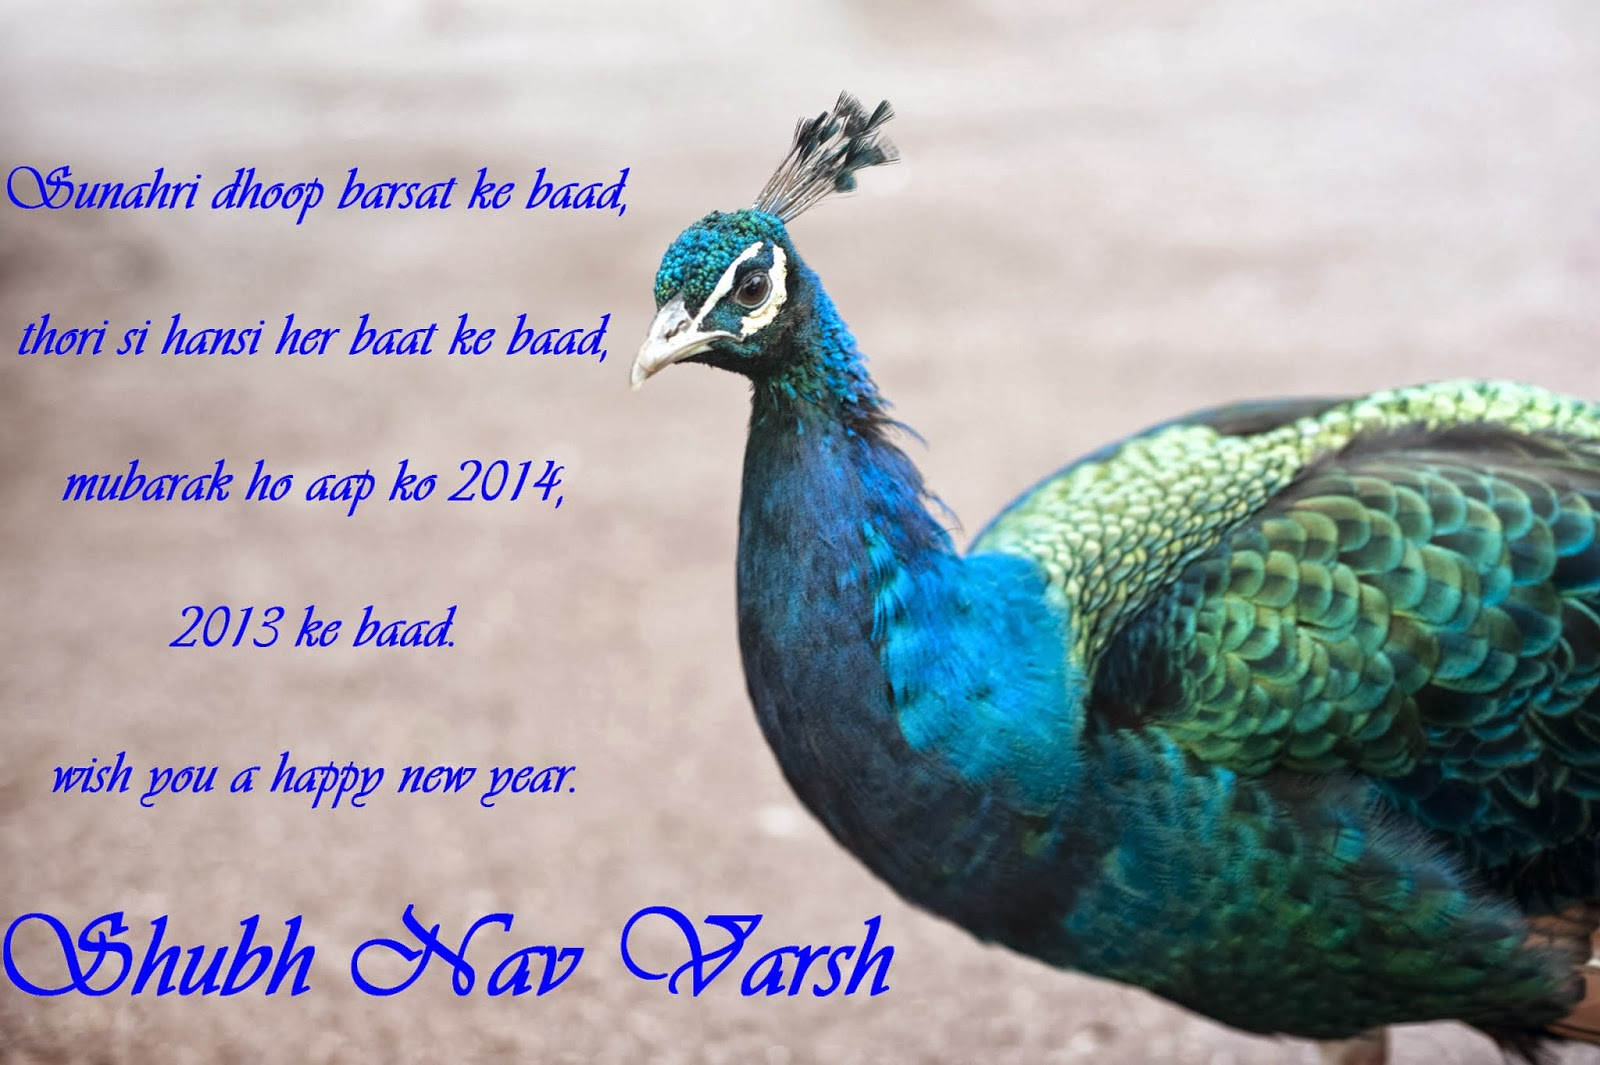 New year wishes for friends in hindi 2 best new year wishes to download the above wallpaper image in full size first left click on the image then right click on the image and click on save image assave picture as m4hsunfo